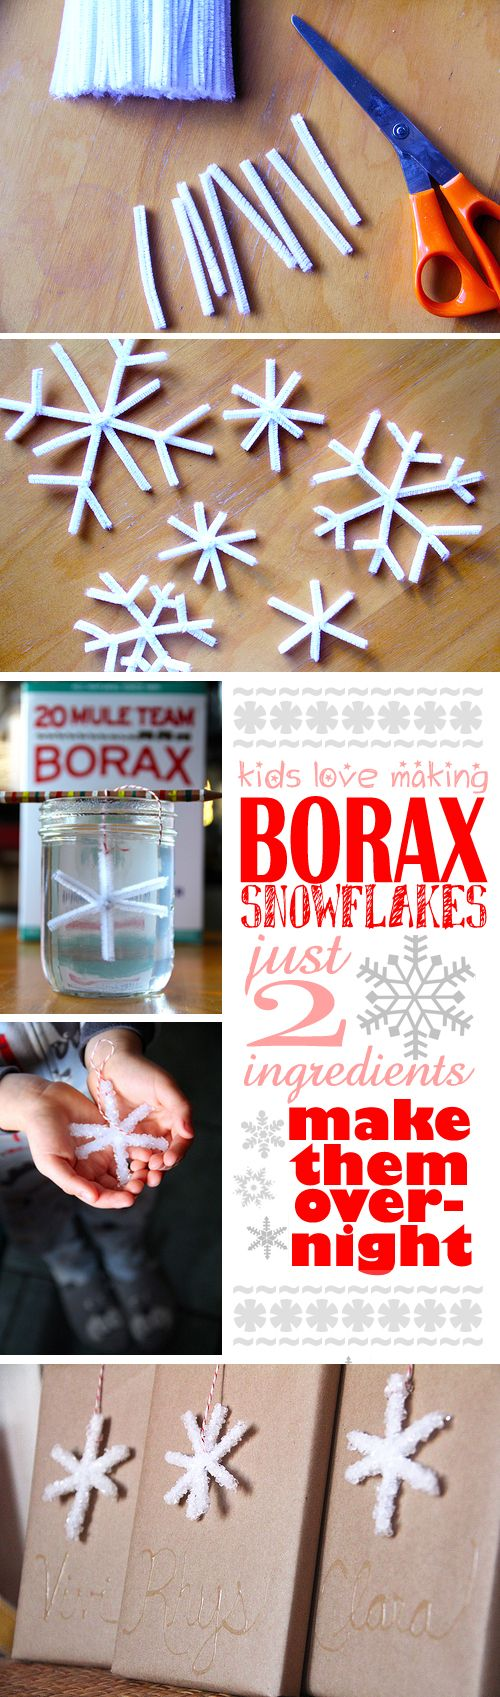 Easy Borax snowflakes. Perfect advent calendar craft for kids.